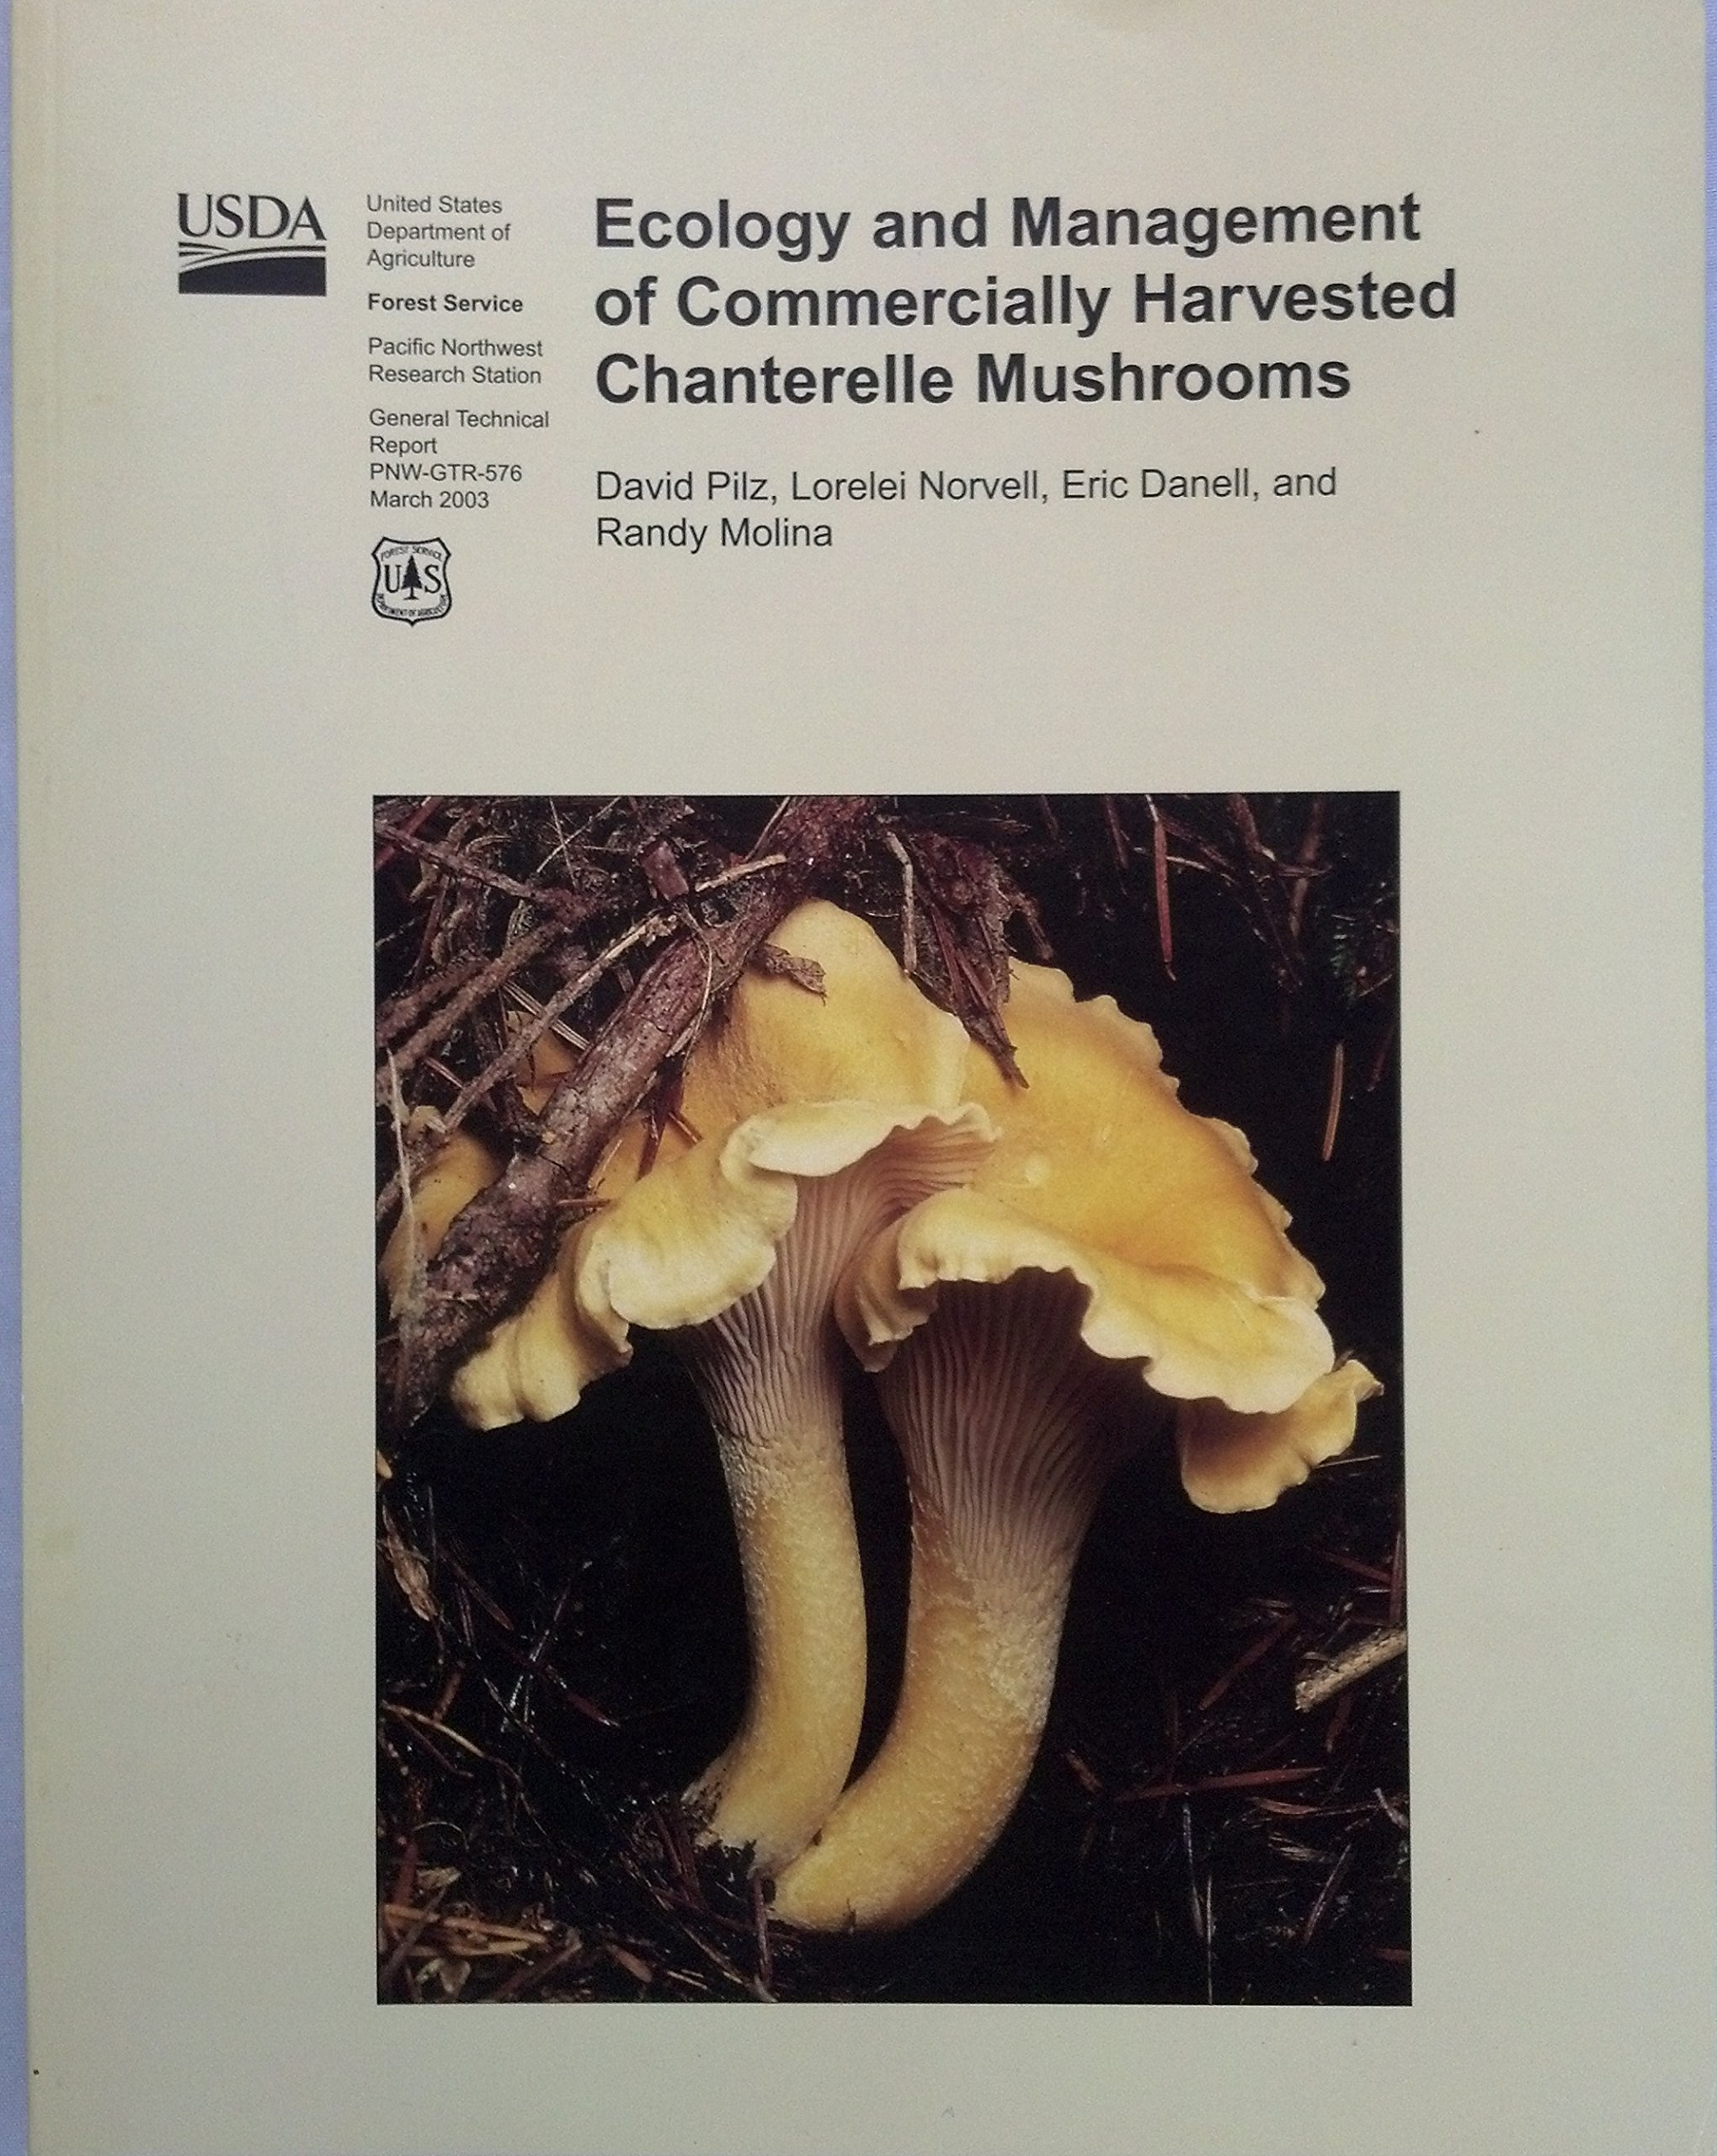 Ecology and Management of Commerically Harvested Chanterelle Mushrooms